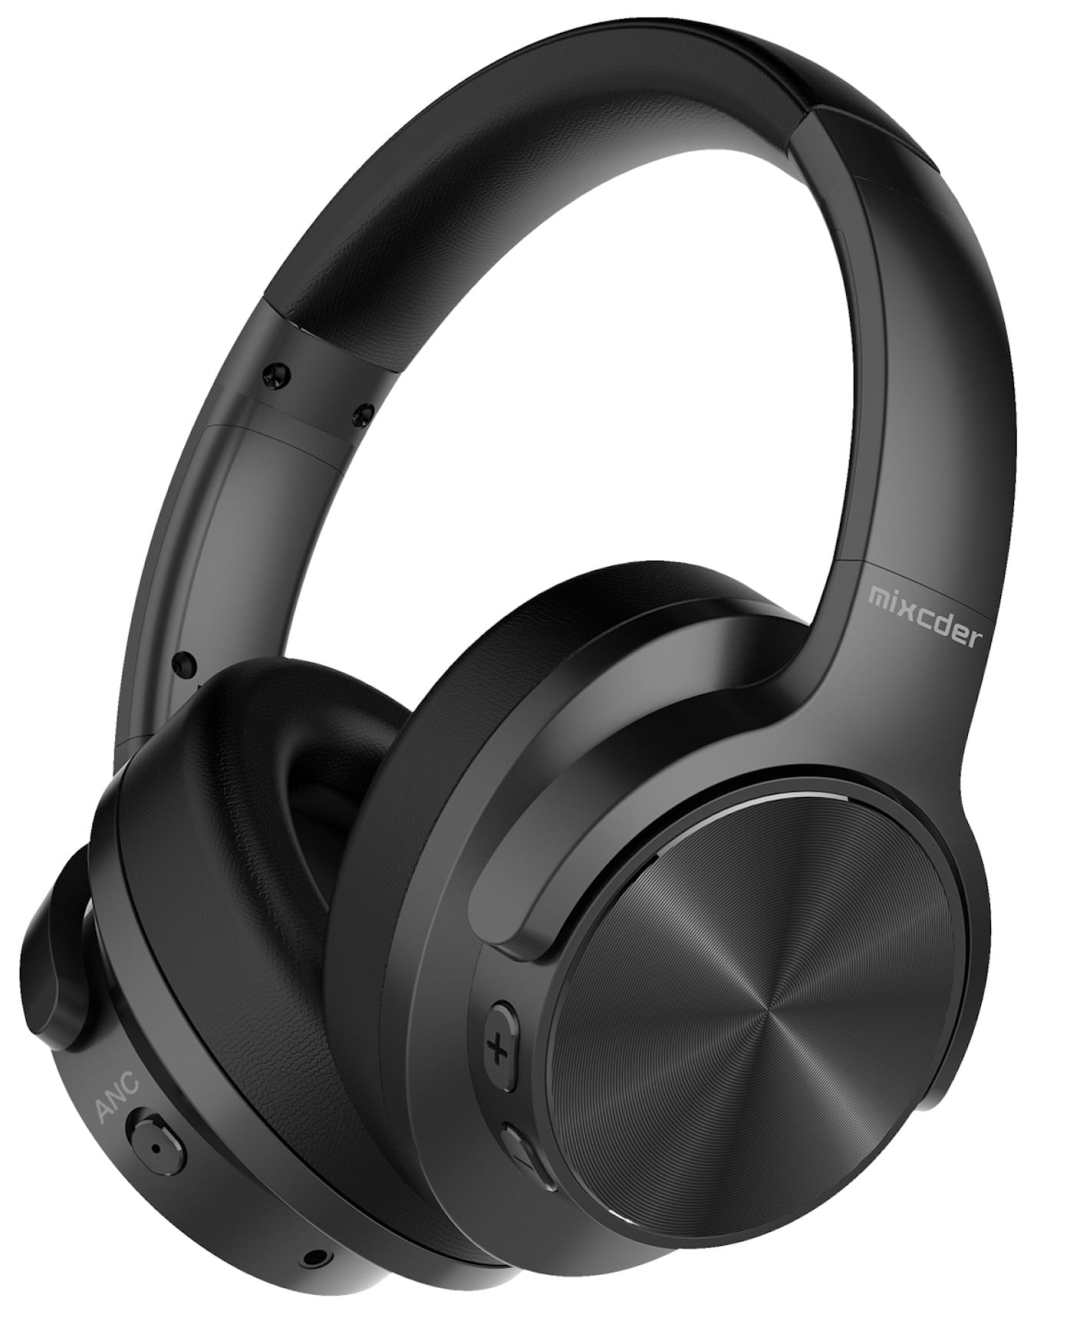 E9 Active Noise Cancelling From Mixcder